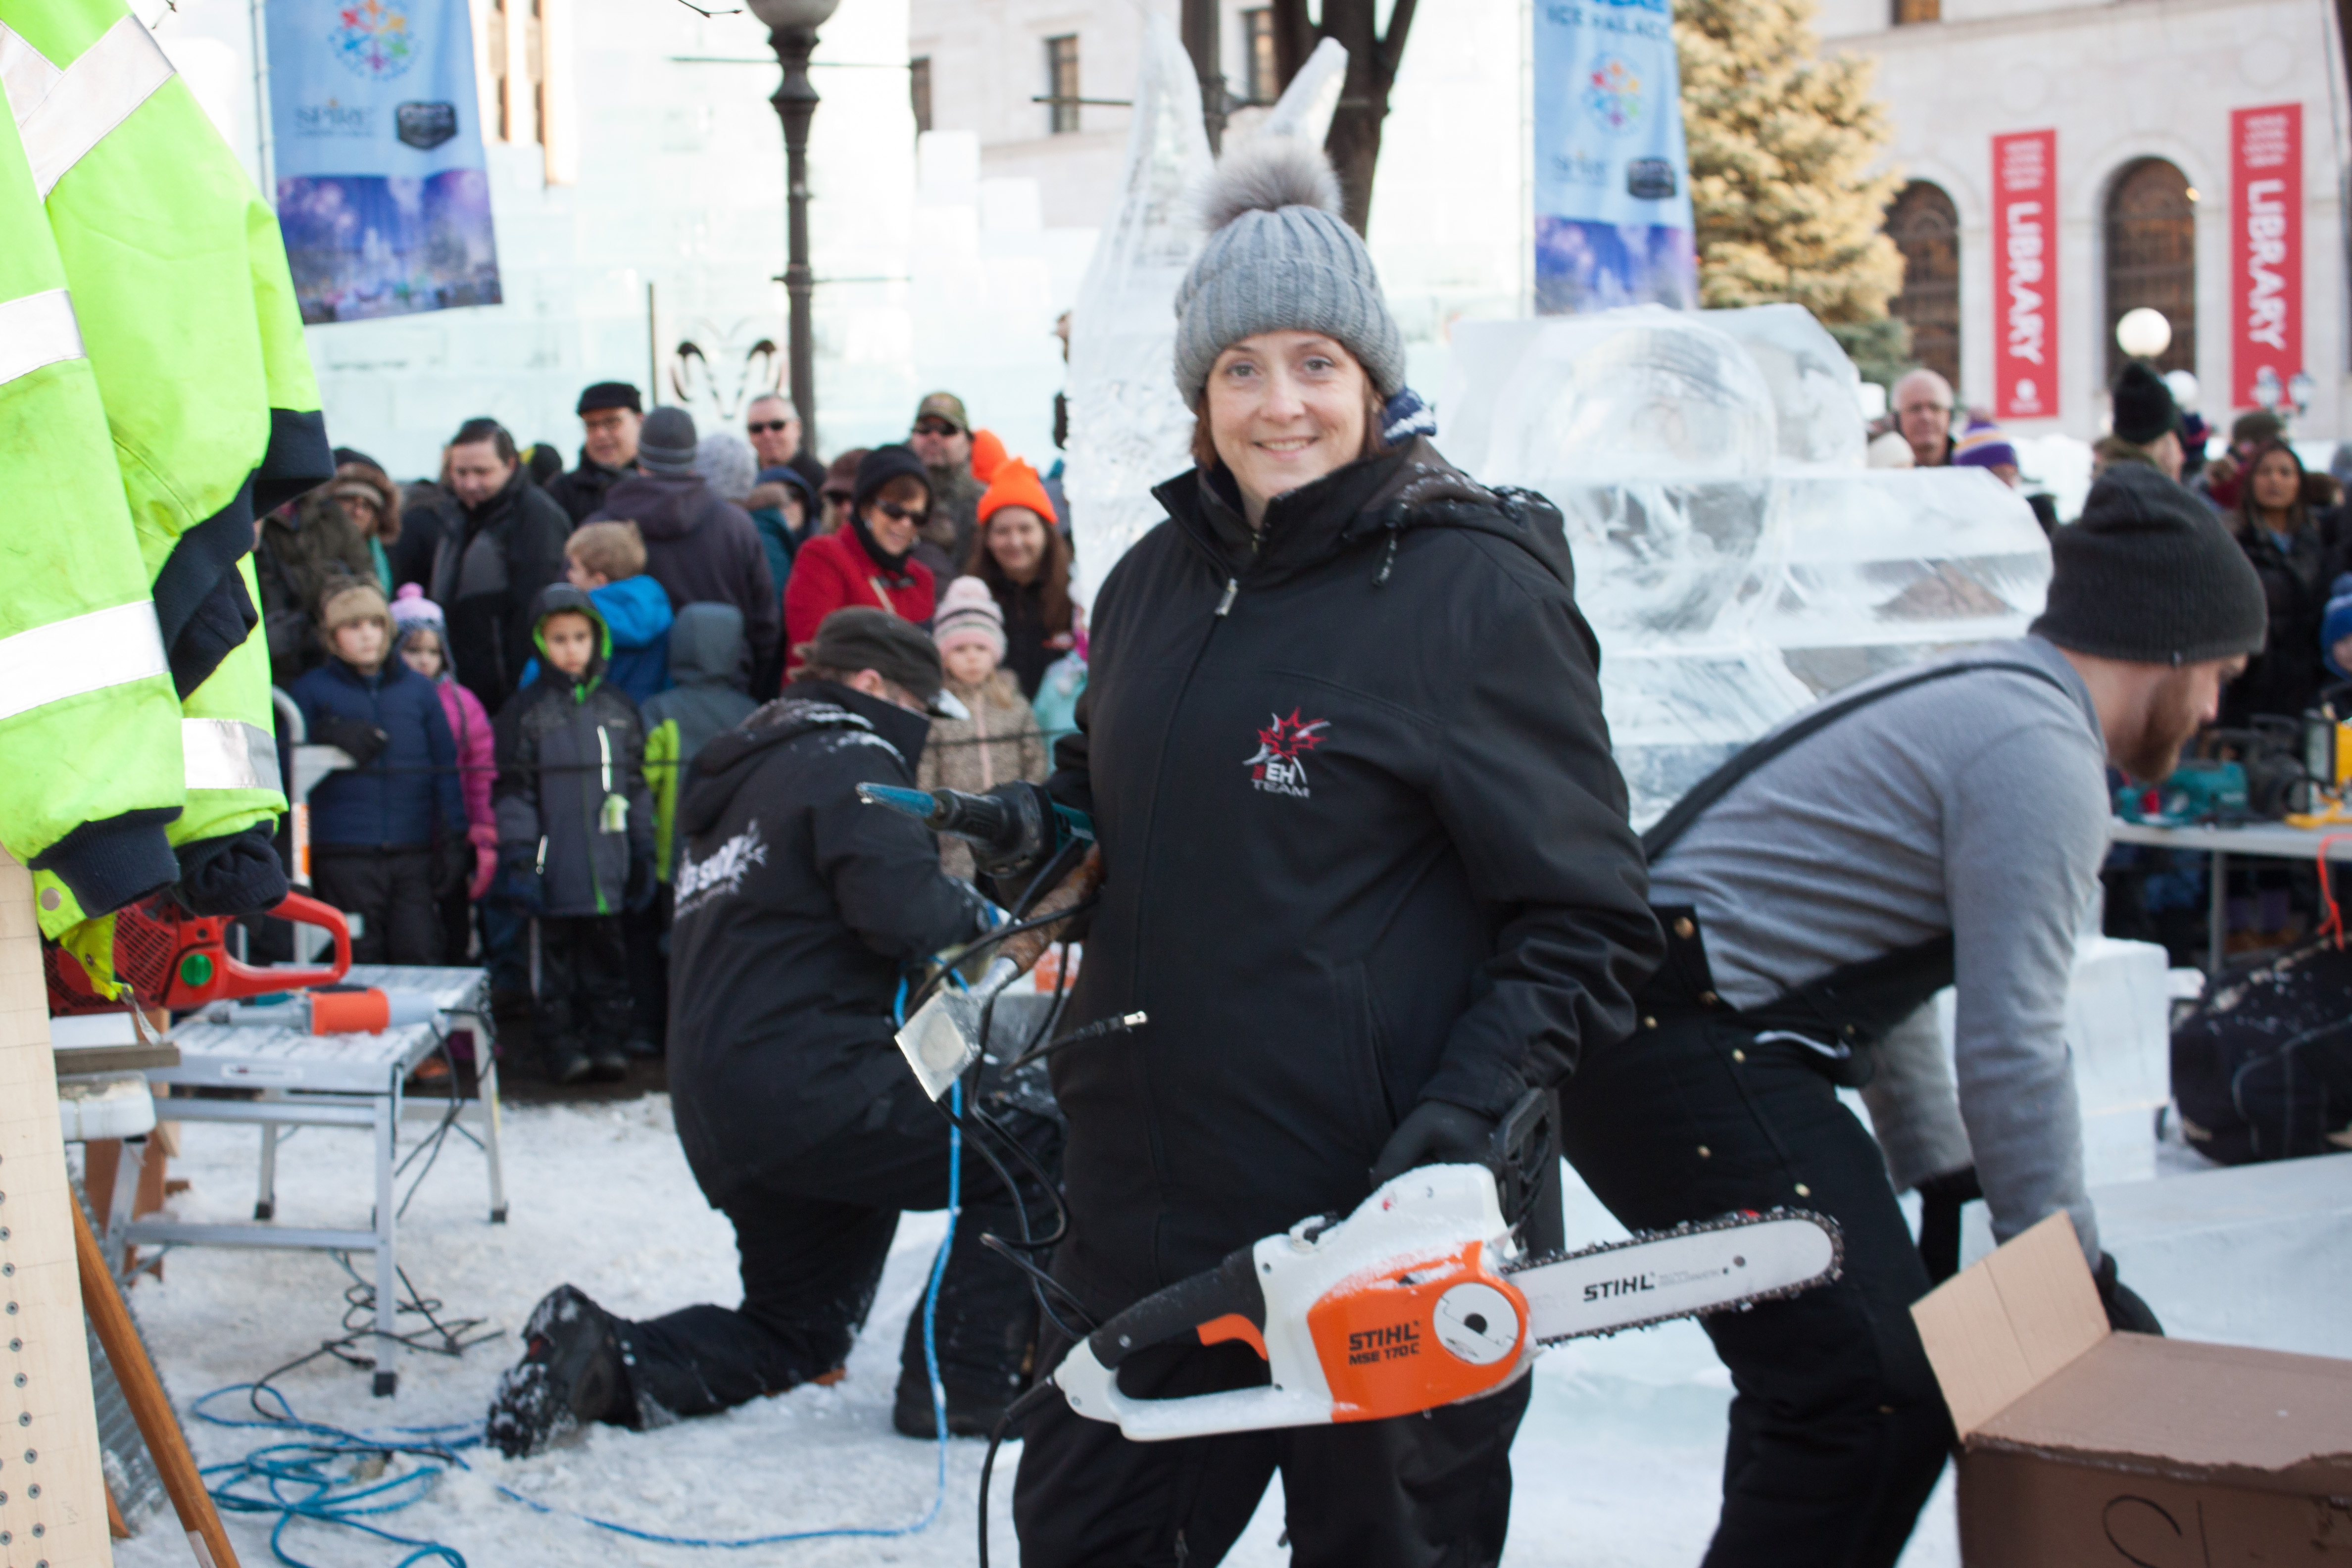 Ice Sculptures and a Chainsaw – It's all about trust